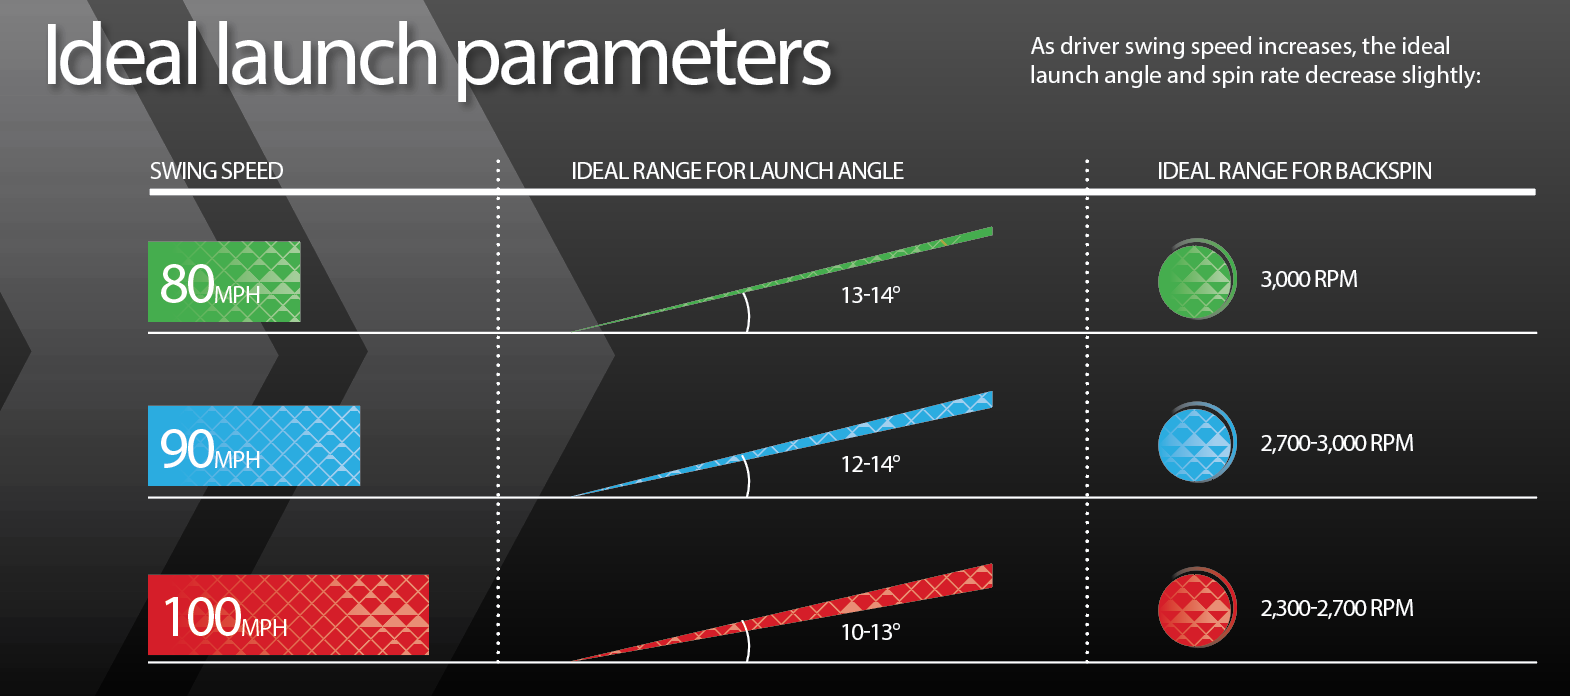 Desired Launch Angle Spin Rates Change Based On Driver Speed